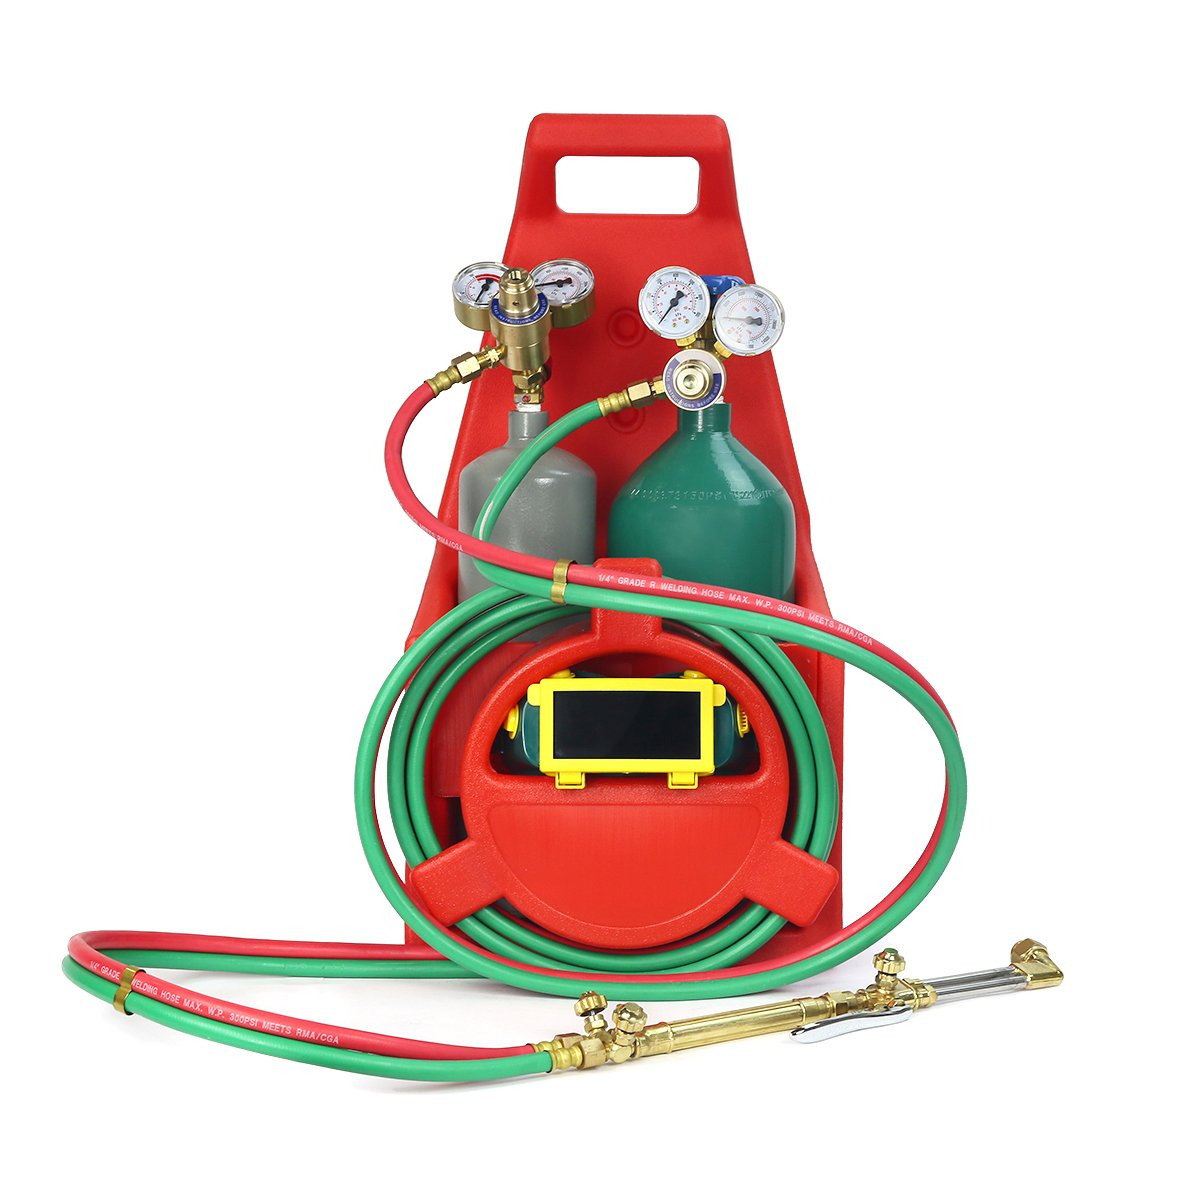 Xtremepowerus Professional Tote Oxygen Acetylene Oxy Welding Cutting Torch Kit Victor W Tank 55146